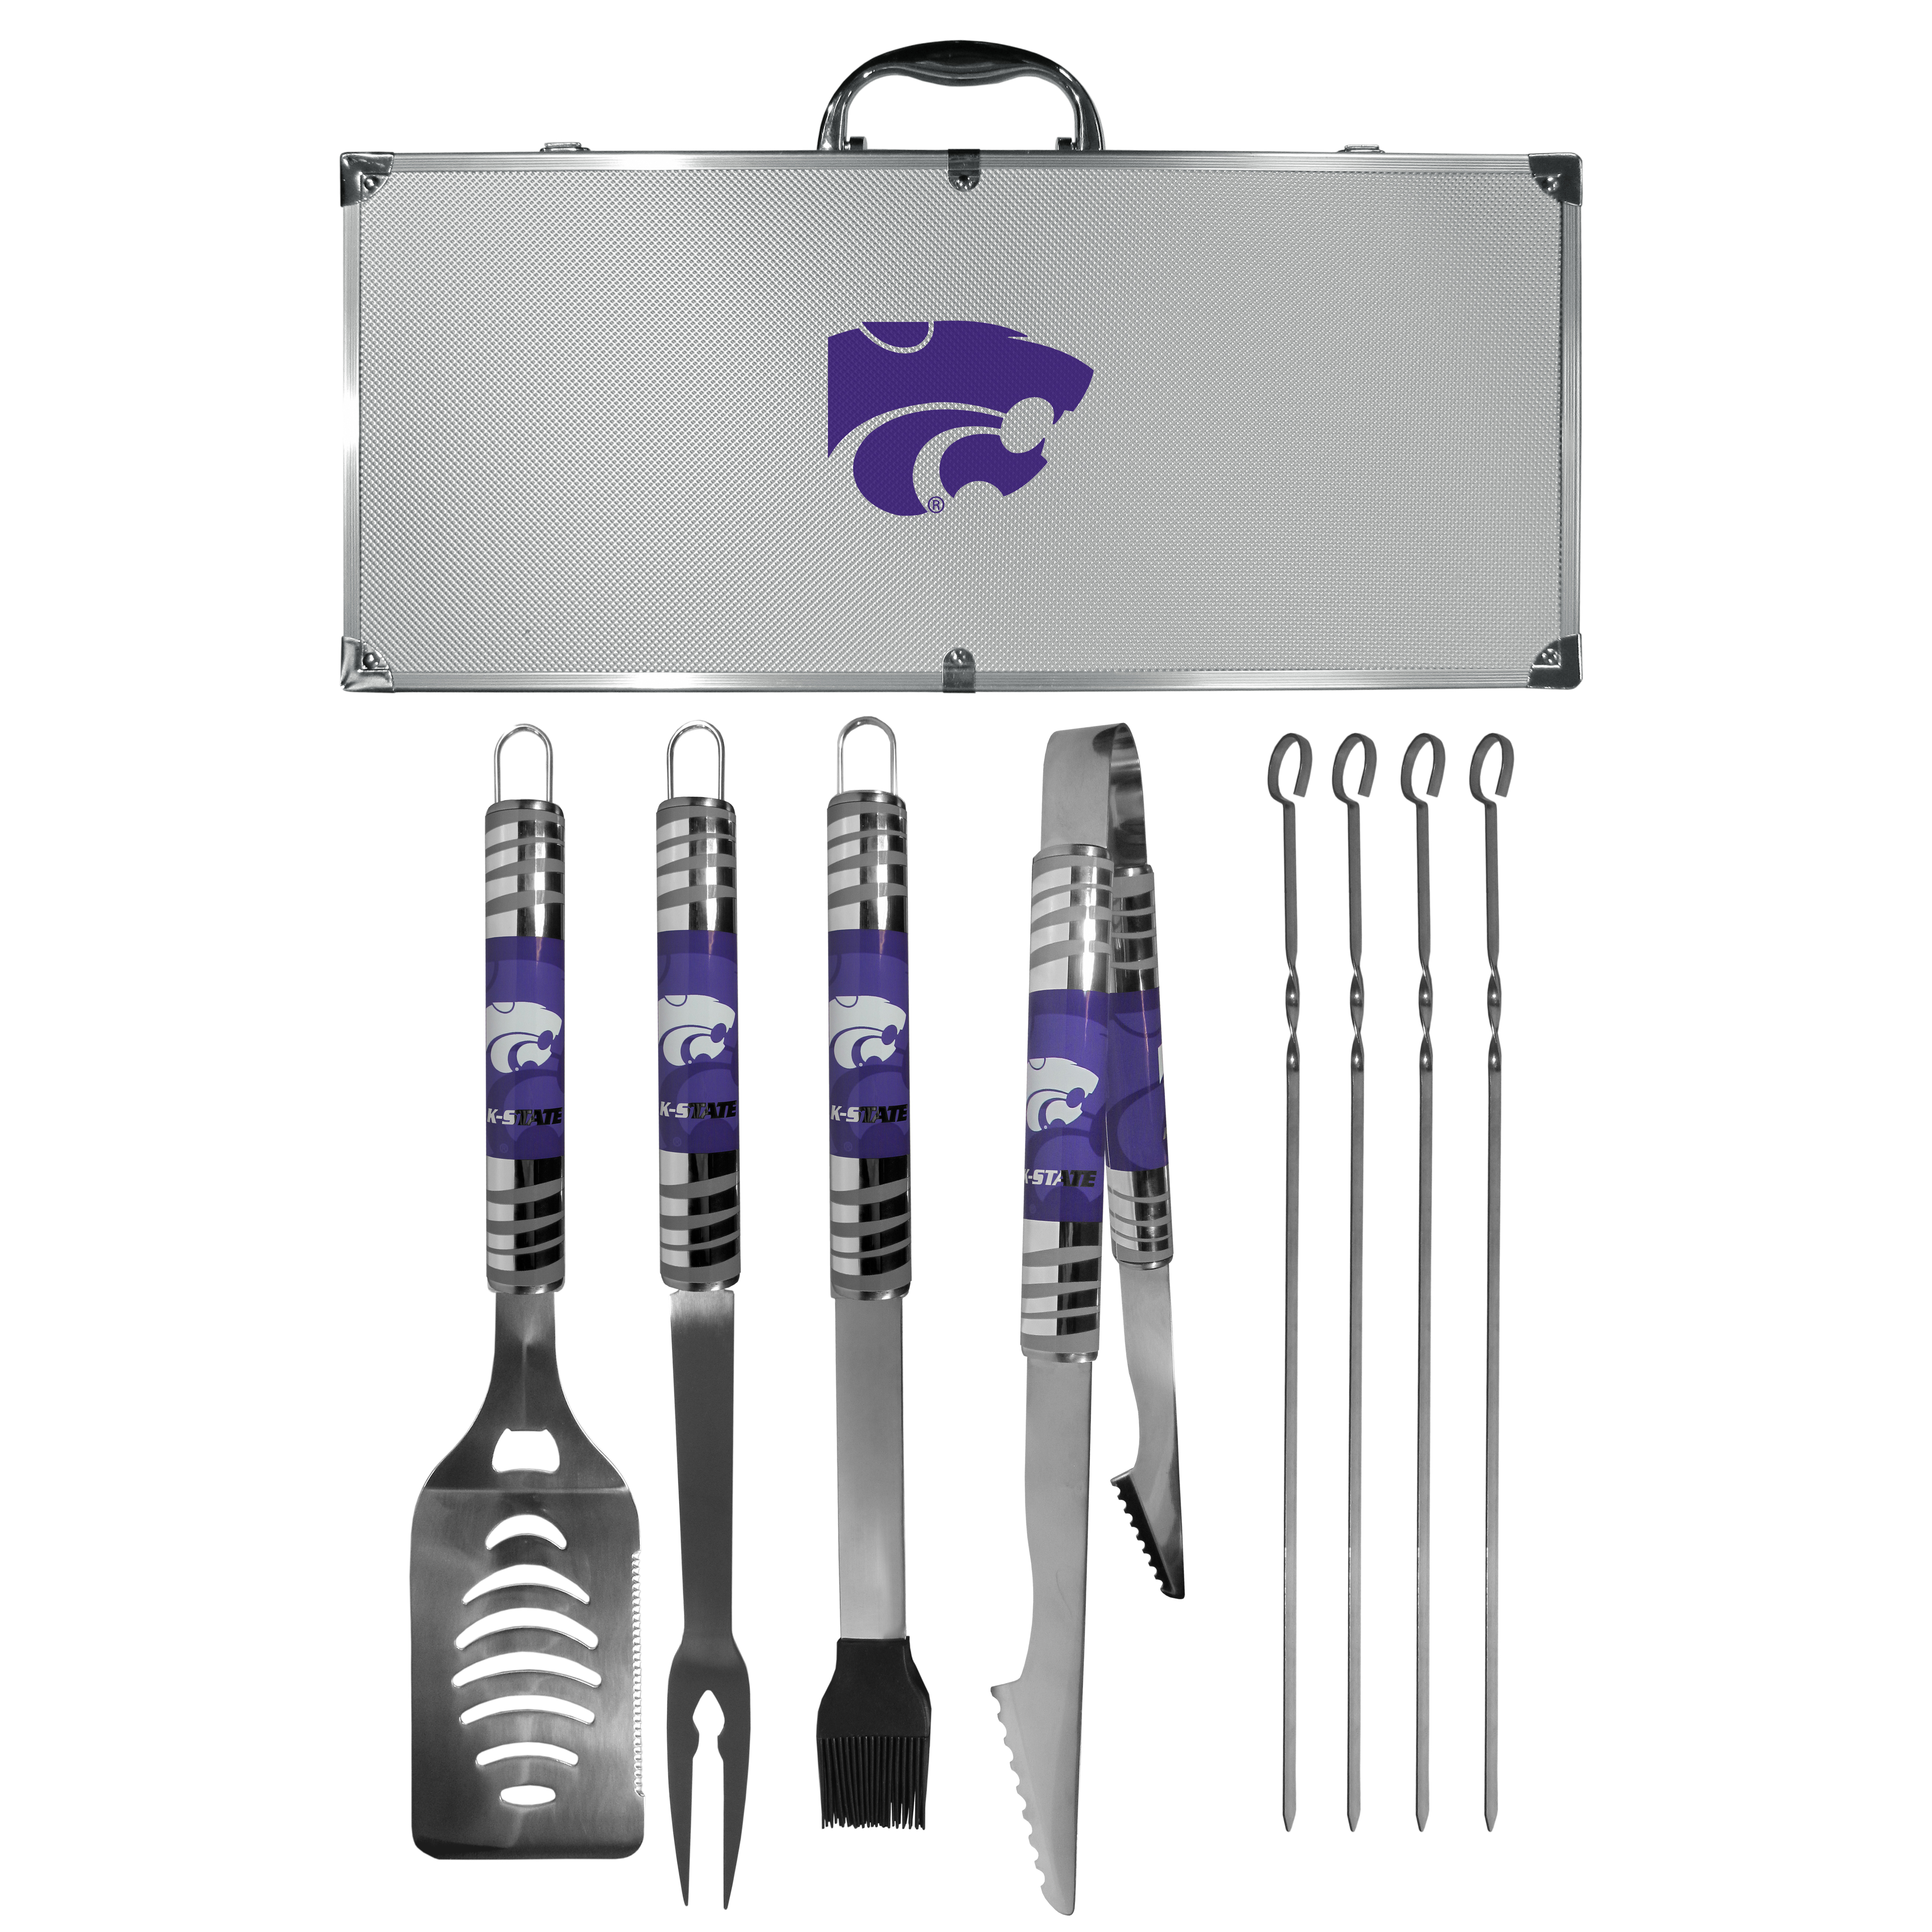 Kansas St. Wildcats 8 pc Tailgater BBQ Set - This is the ultimate Kansas St. Wildcats tailgate accessory! The high quality, 420 grade stainless steel tools are durable and well-made enough to make even the pickiest grill master smile. This complete grill accessory kit includes; 4 skewers, spatula with bottle opener and serrated knife edge, basting brush, tongs and a fork. The 18 inch metal carrying case is perfect for great outdoor use making grilling an ease while camping, tailgating or while having a game day party on your patio. The tools are 17 inches long and feature vivid team graphics. The metal case features a large team emblem with exceptional detail. This high-end men's gift is sure to be a hit as a present on Father's Day or Christmas.